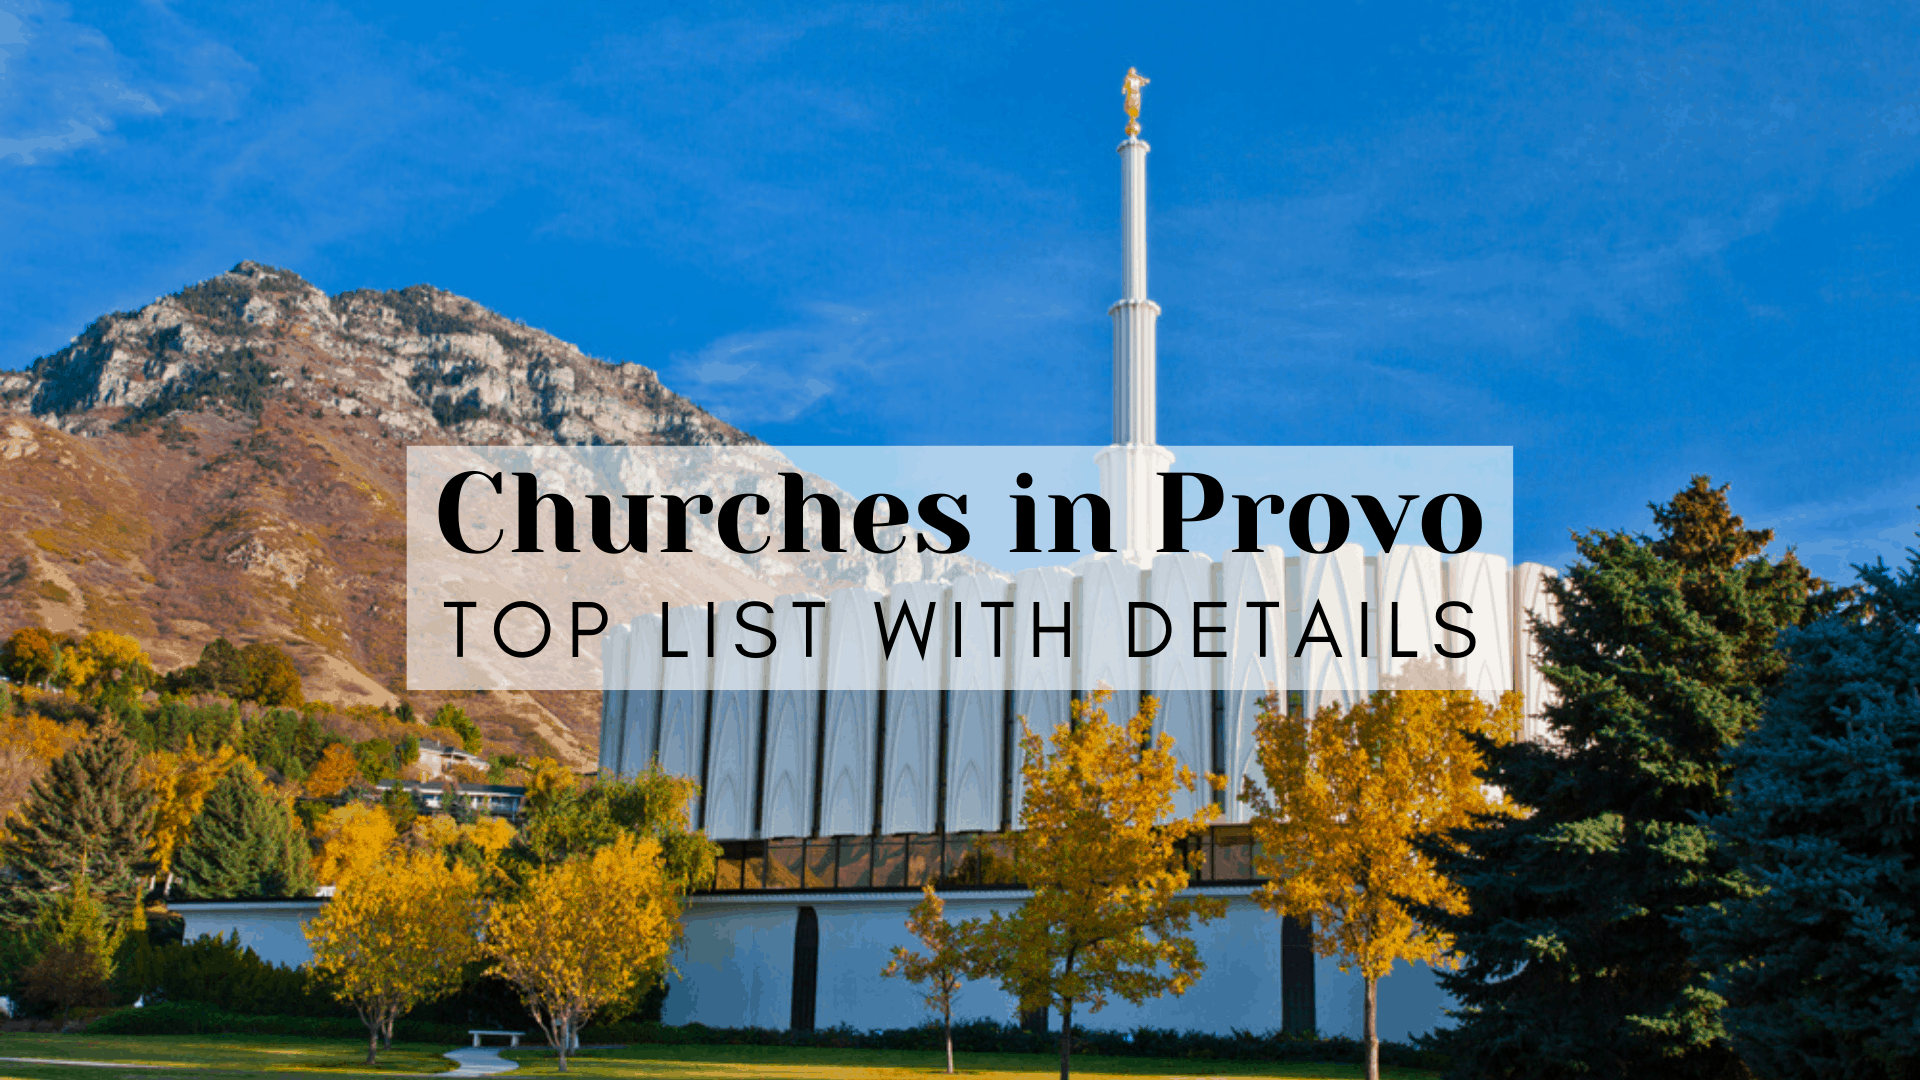 Churches in Provo, UT | Top List with Details